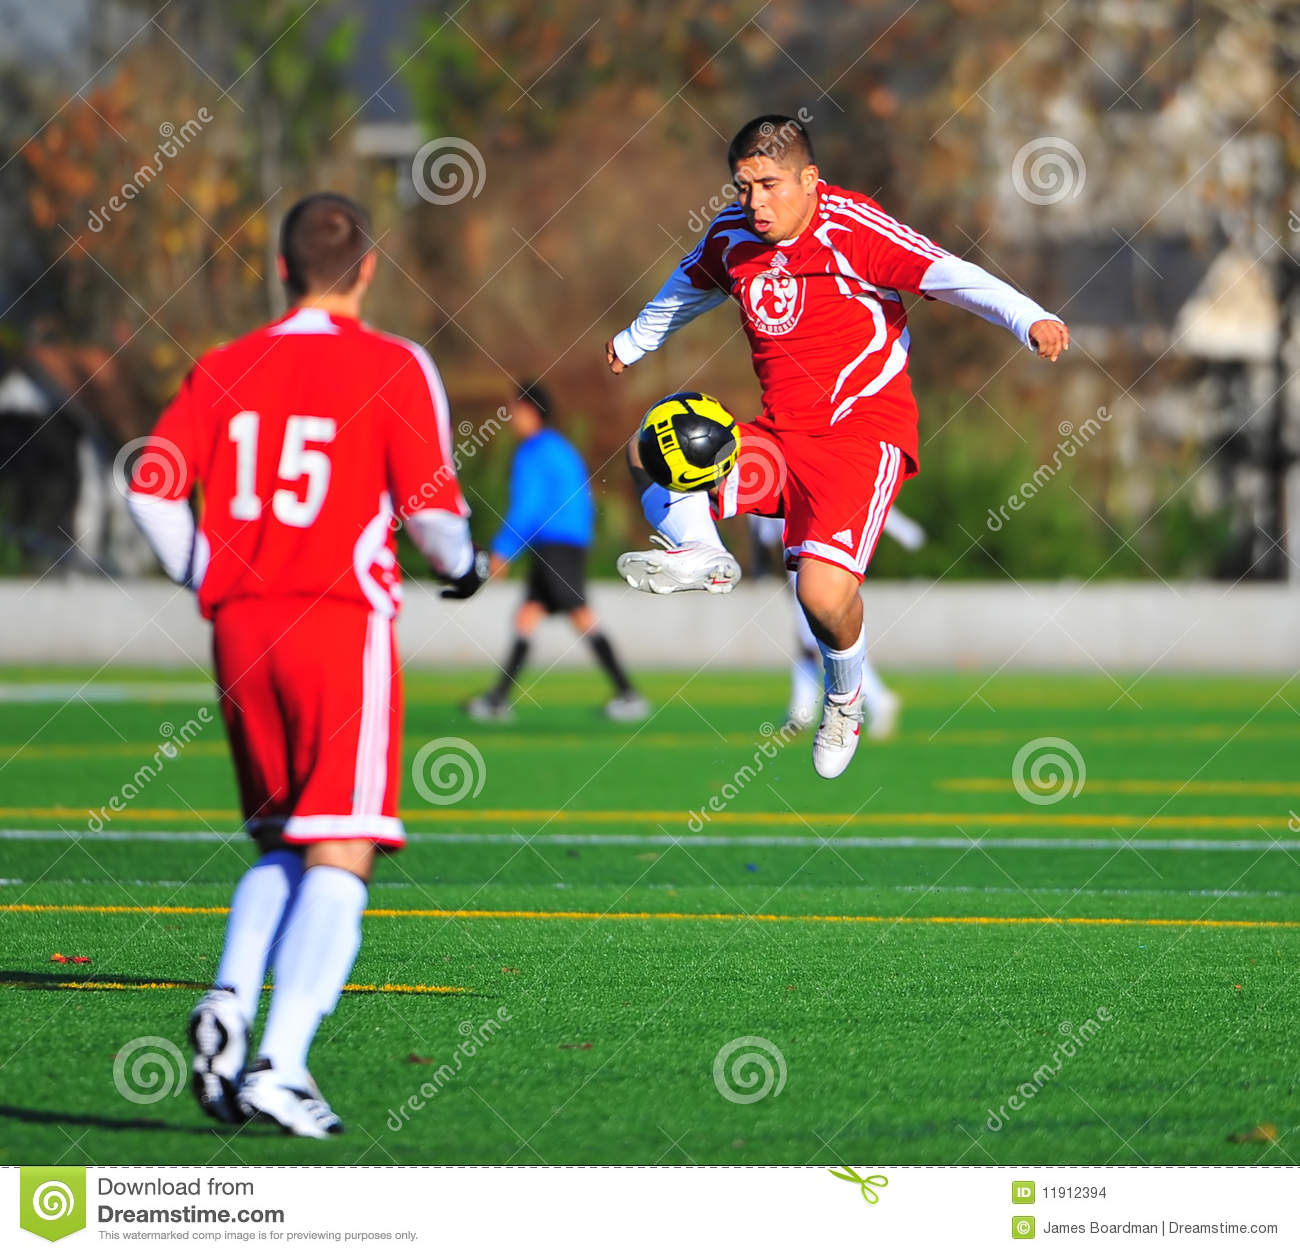 the social interaction of a mens soccer The present research tested the prediction that mixed-sex interactions may temporarily impair cognitive functioning two studies, in which participants interacted either with a same-sex or opposite-sex other, demonstrated that men's (but not women's) cognitive performance declined following a mixed-sex encounter.